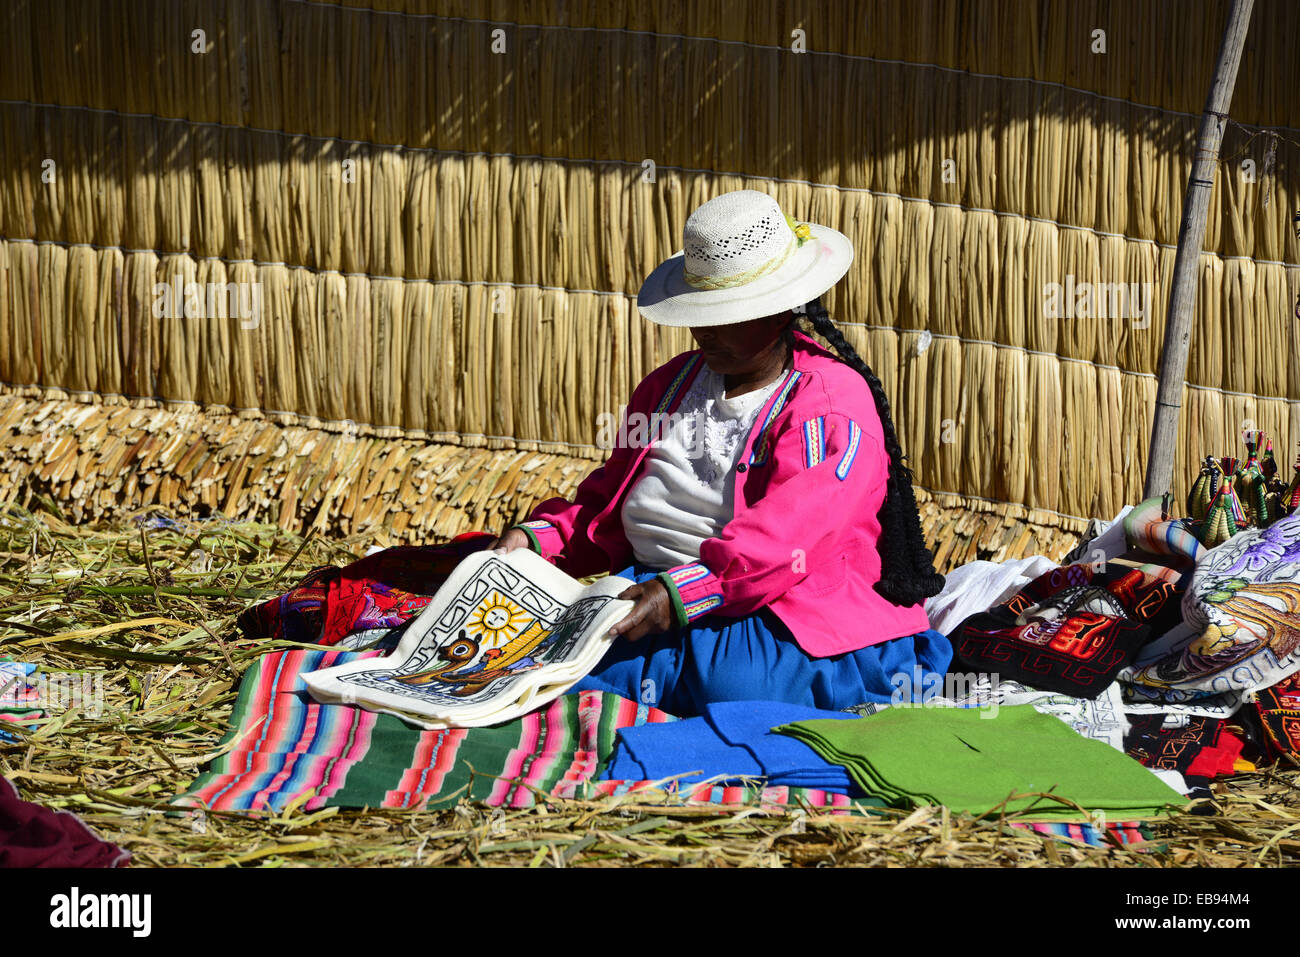 Uros artificial floating islands in Titicaca Lake,Puno,Peru,South America. - Stock Image